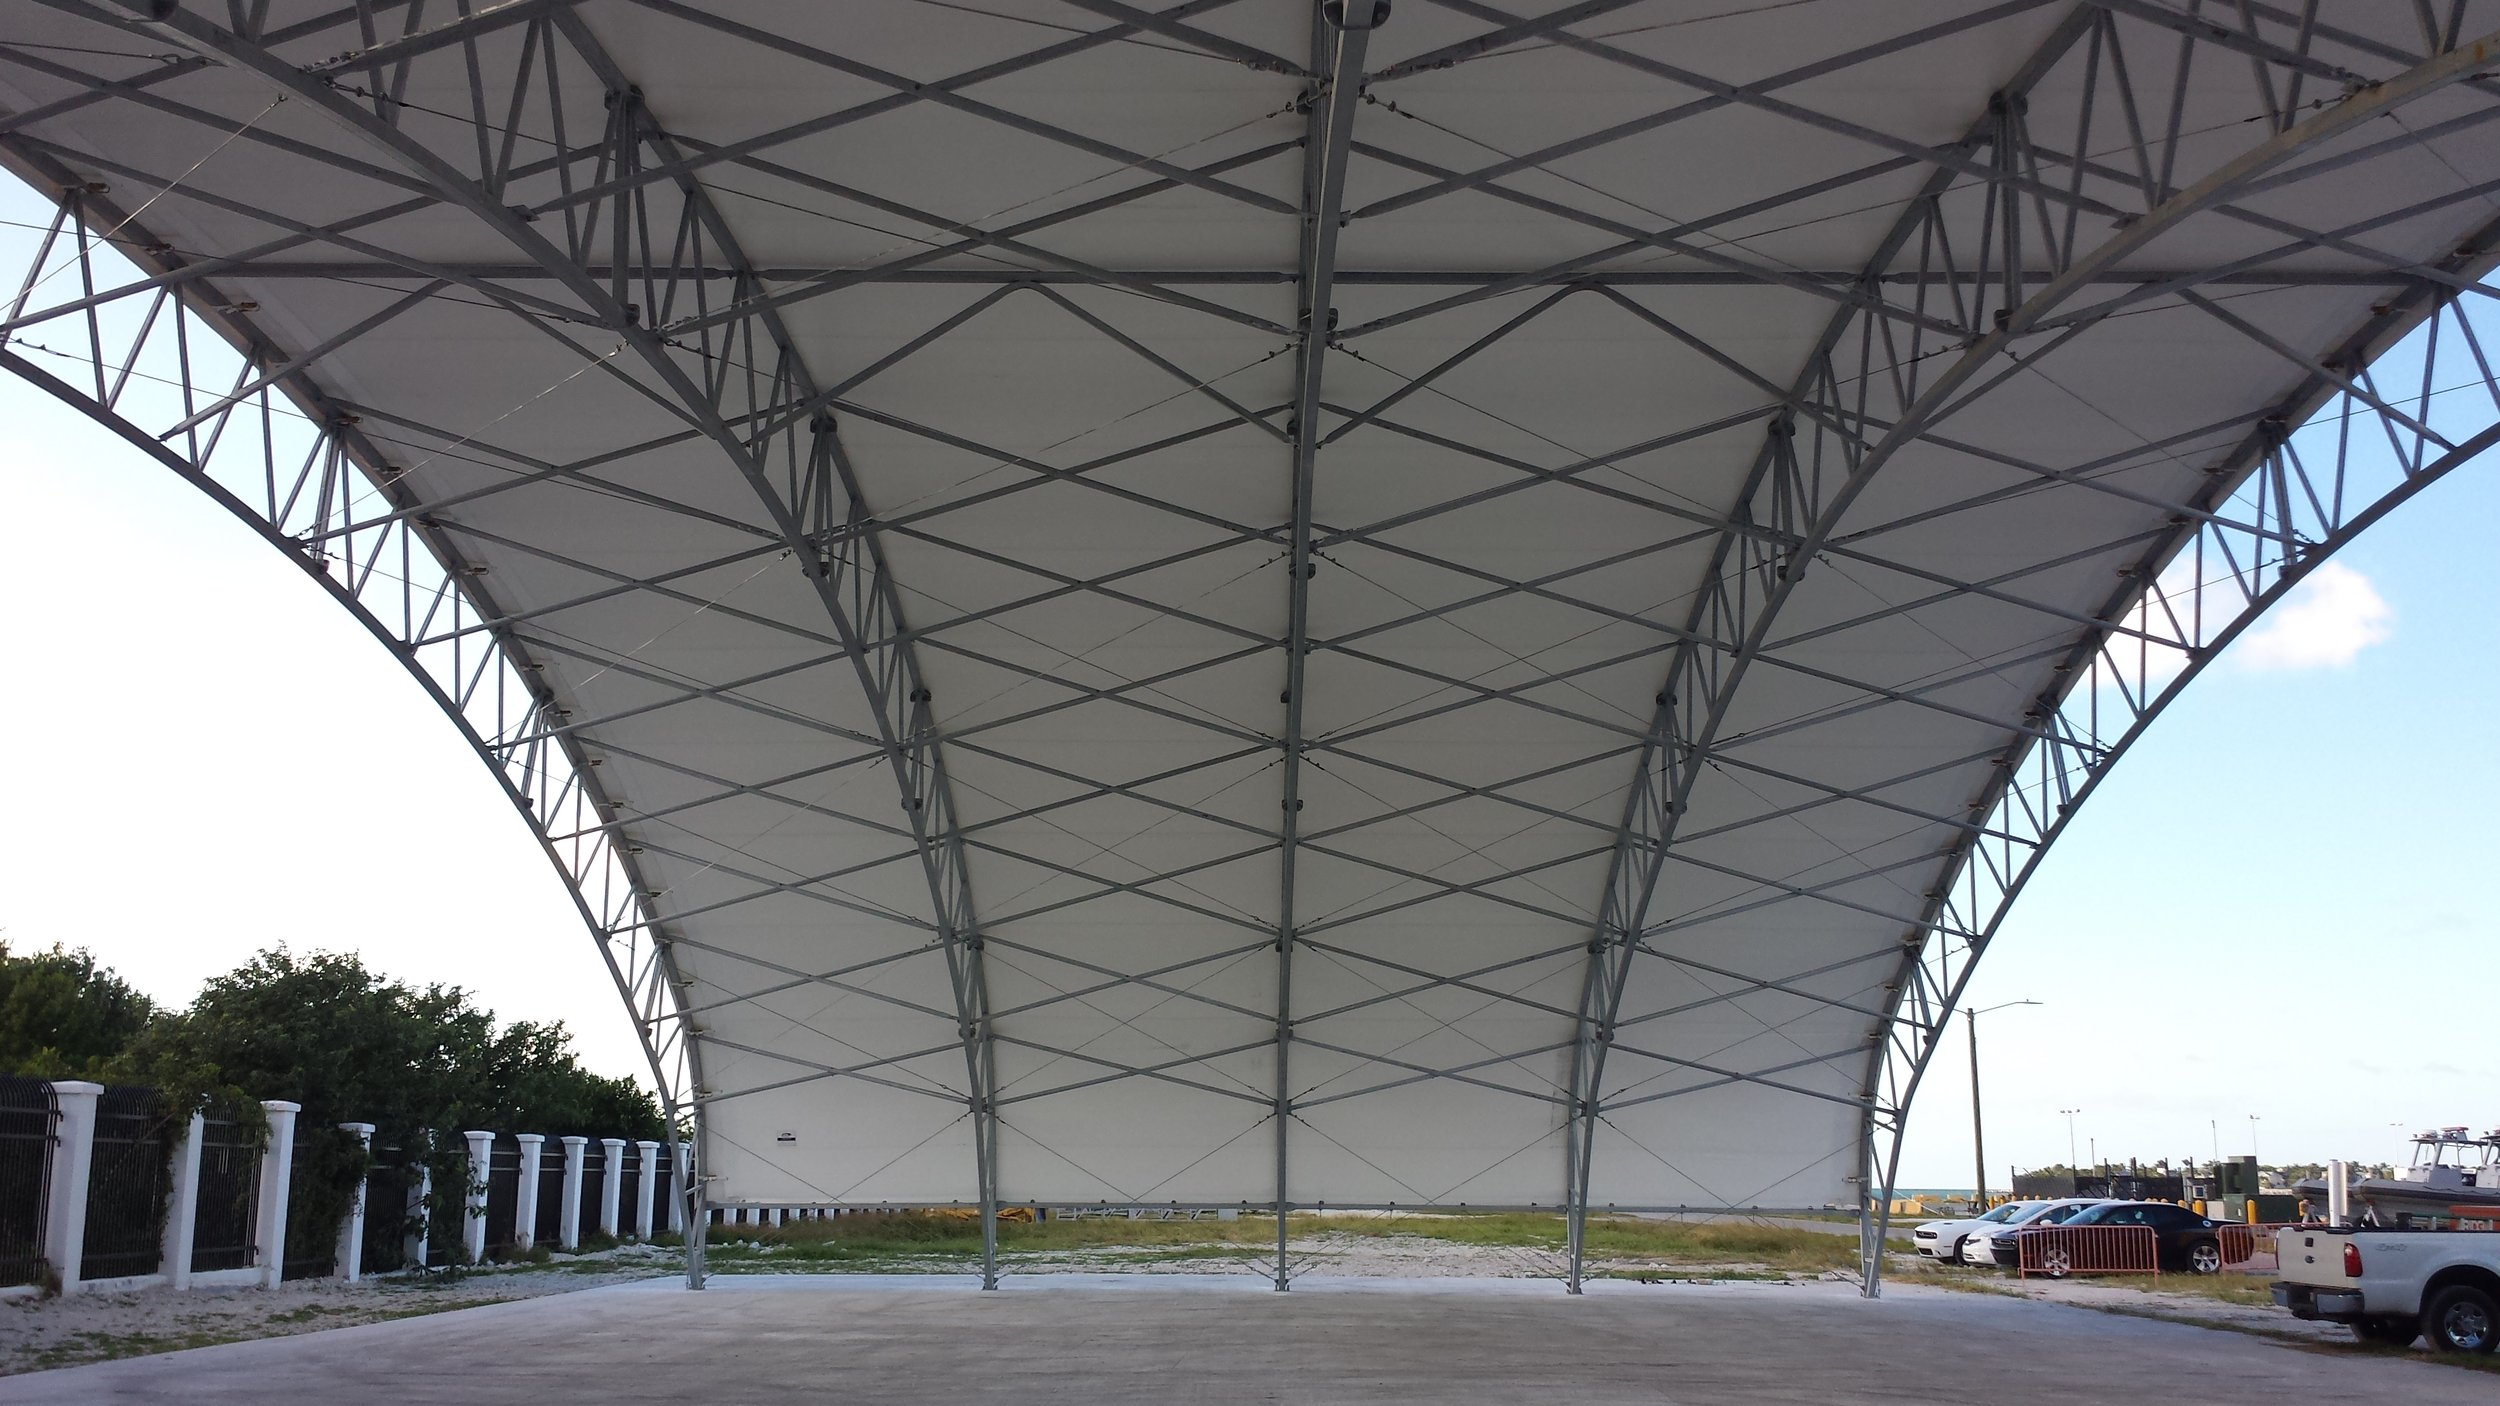 Fabric Structures: Design and Materials